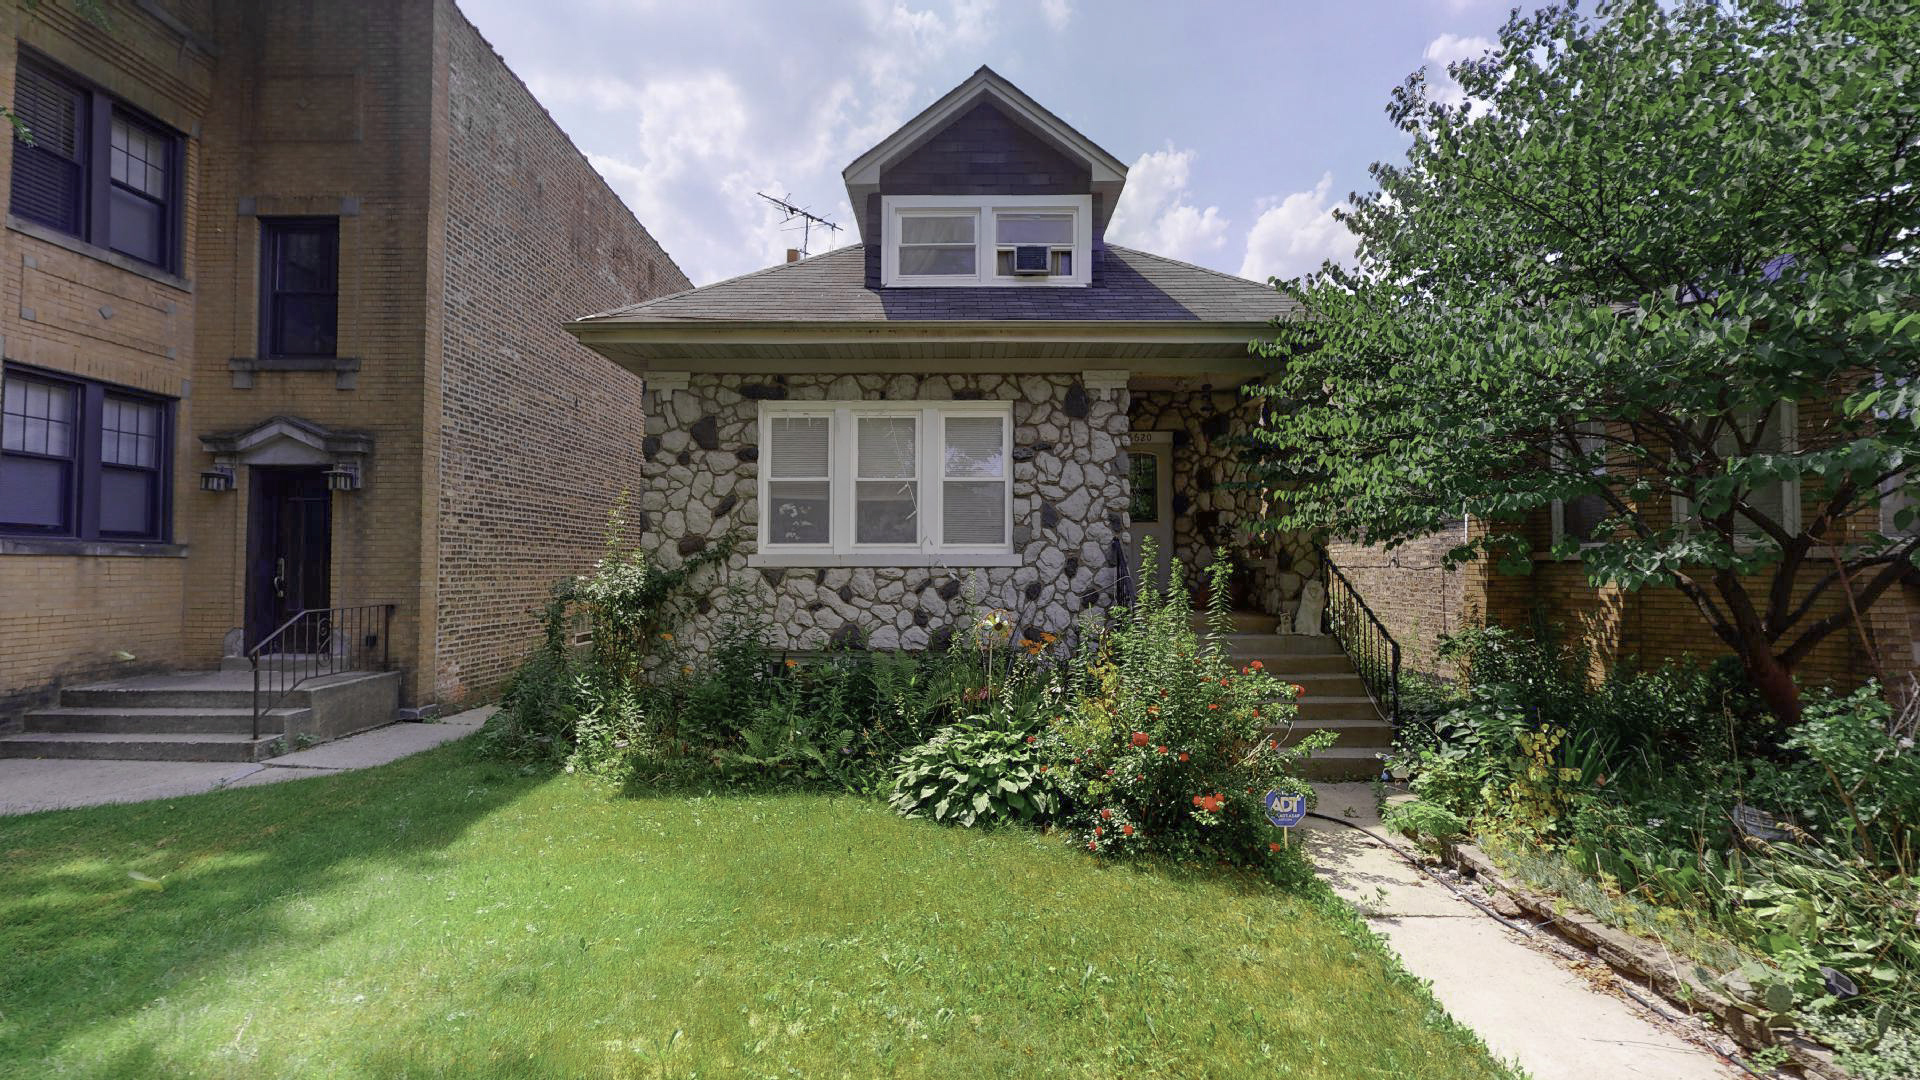 6620 N Rockwell Street, Chicago IL 60645